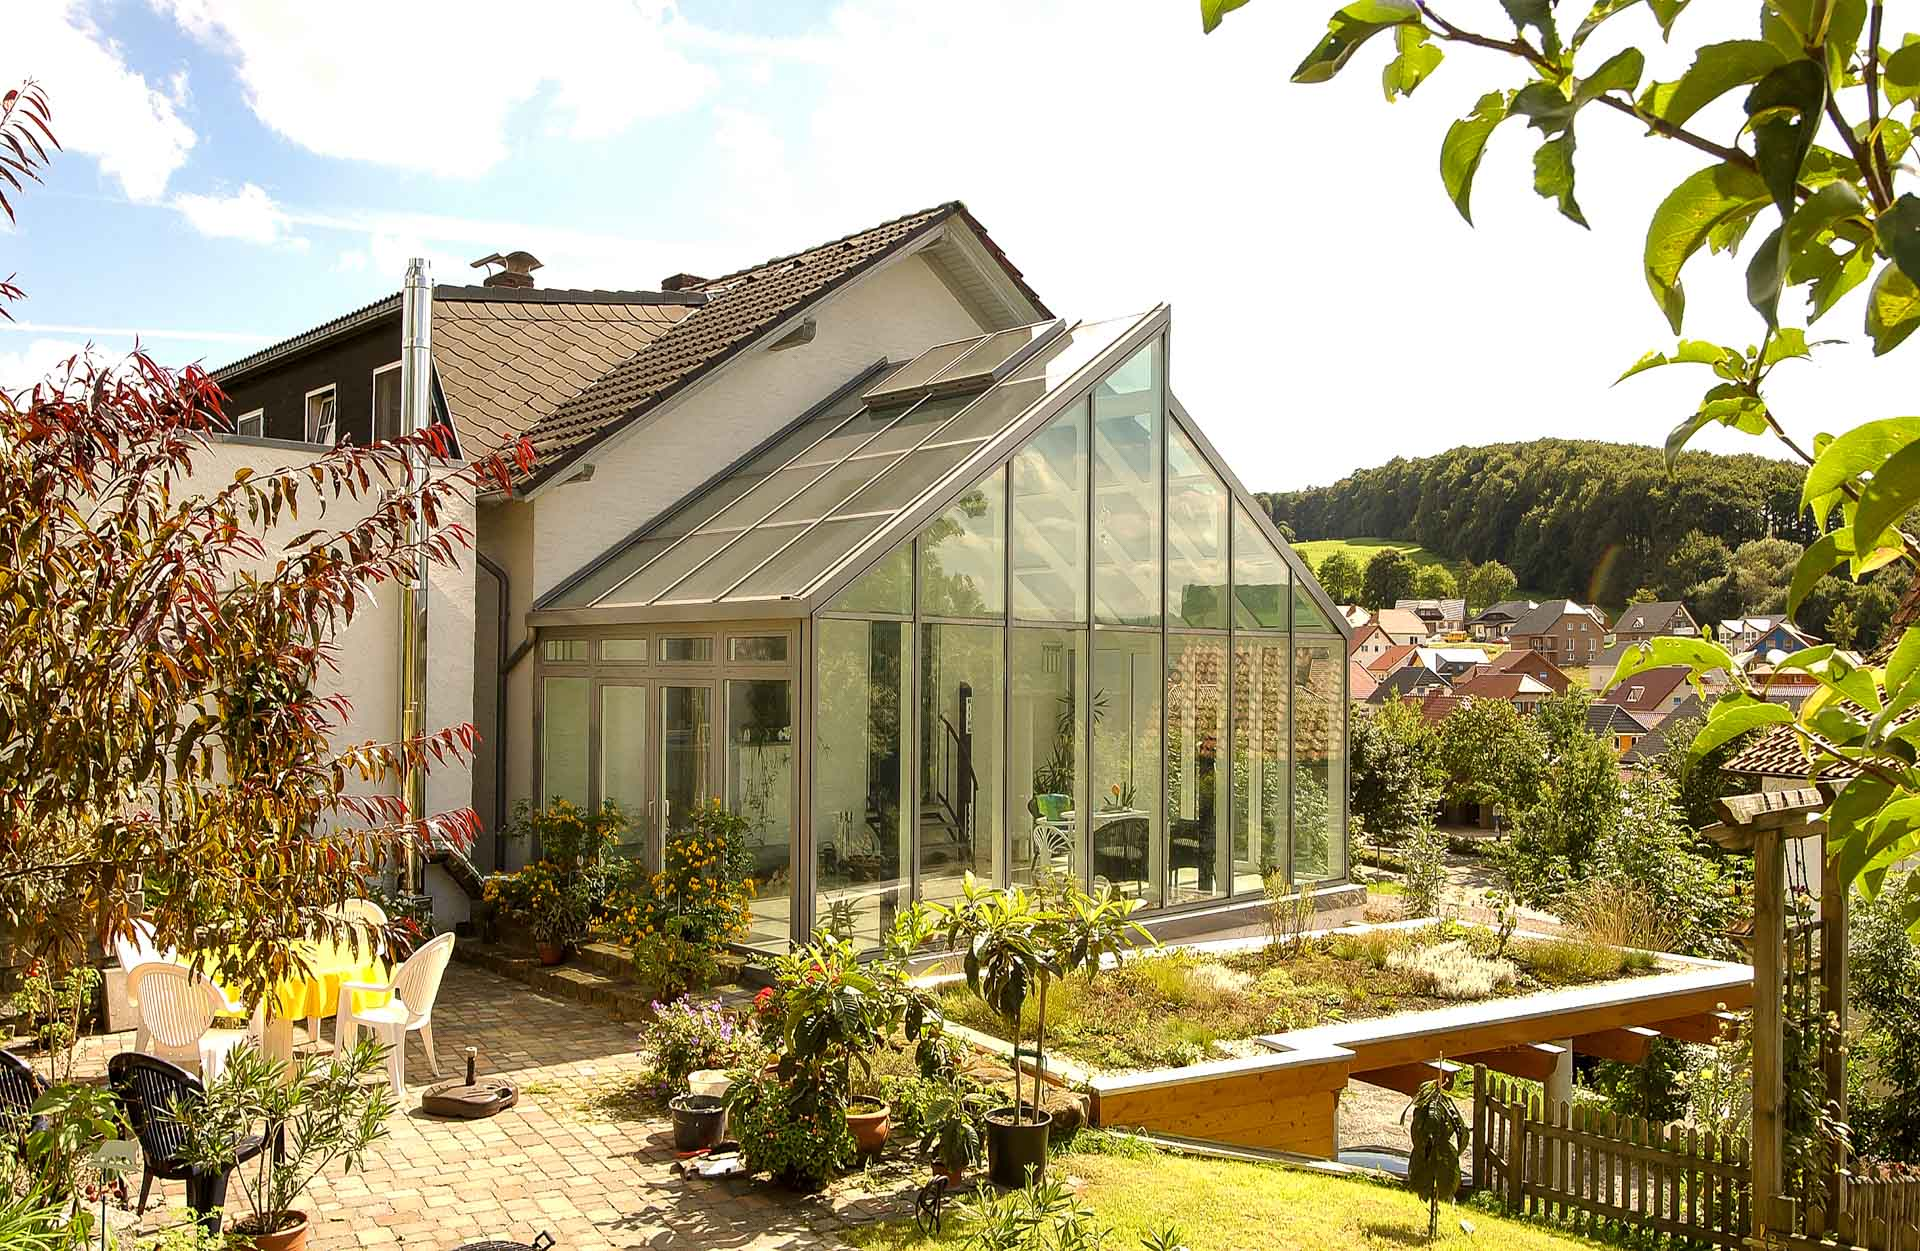 FineArt conservatory in Bad Driburg (object 869). Outstandingly adapted and yet idiosyncratic - the modern glass shingle roof.